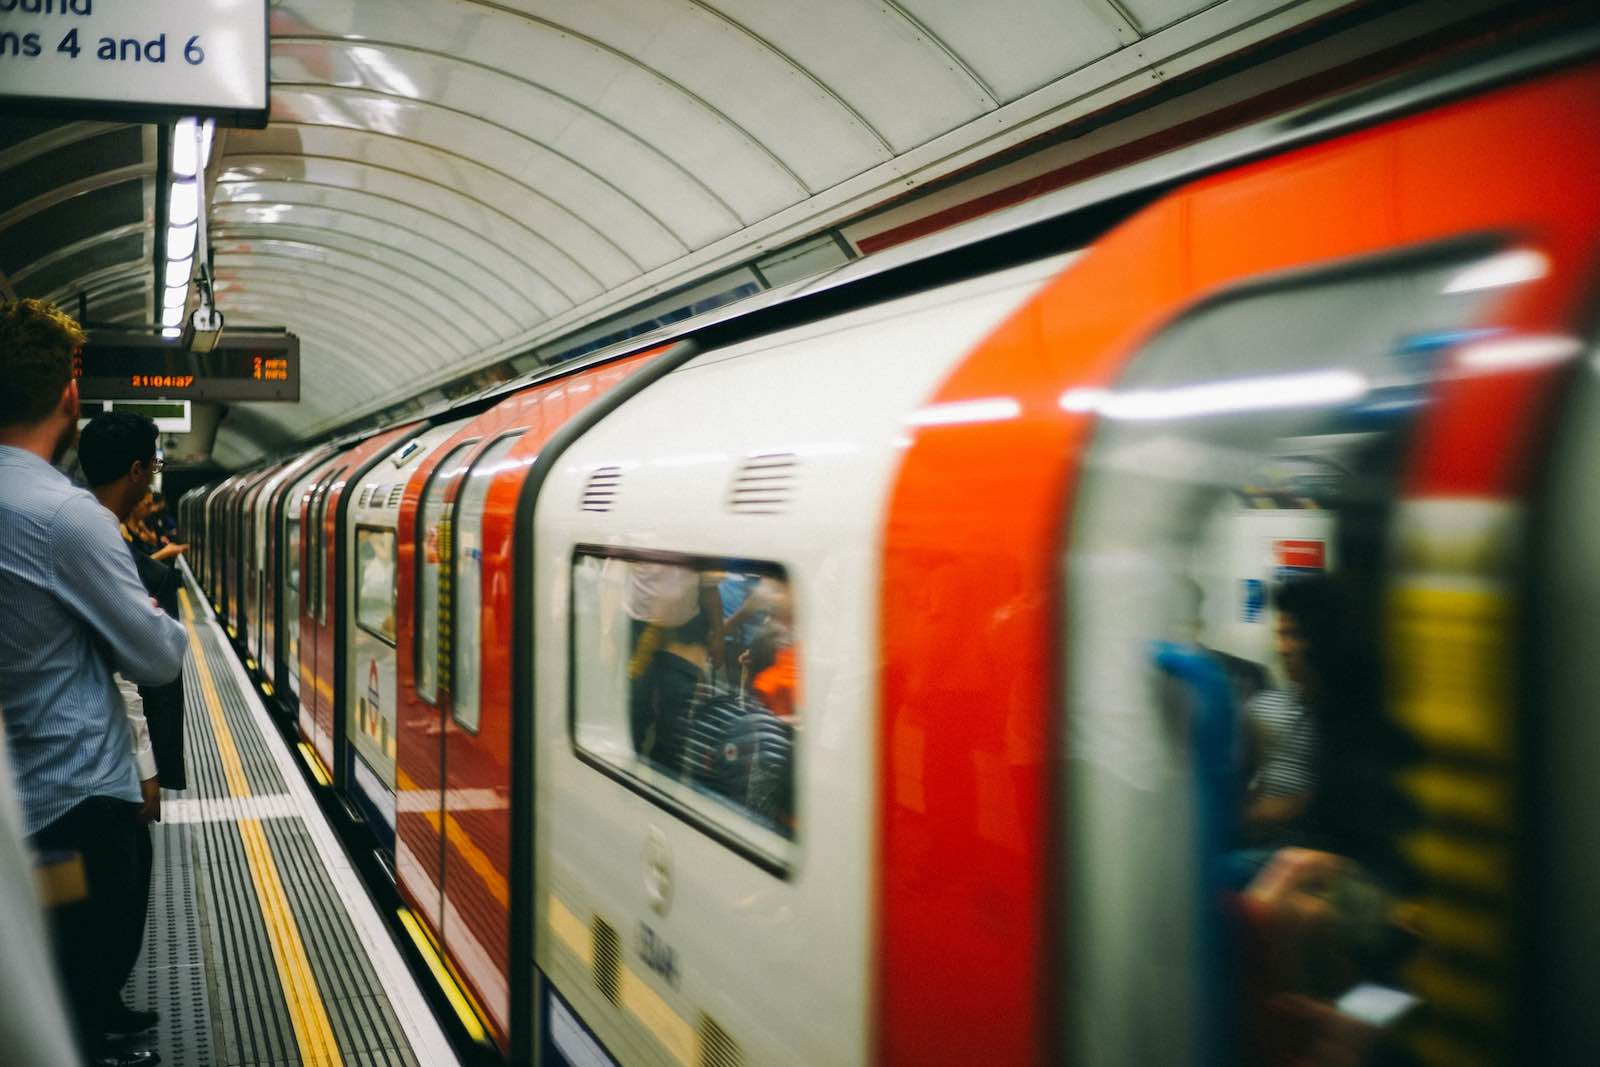 Living in Bloomsbury - Travelling by Tube